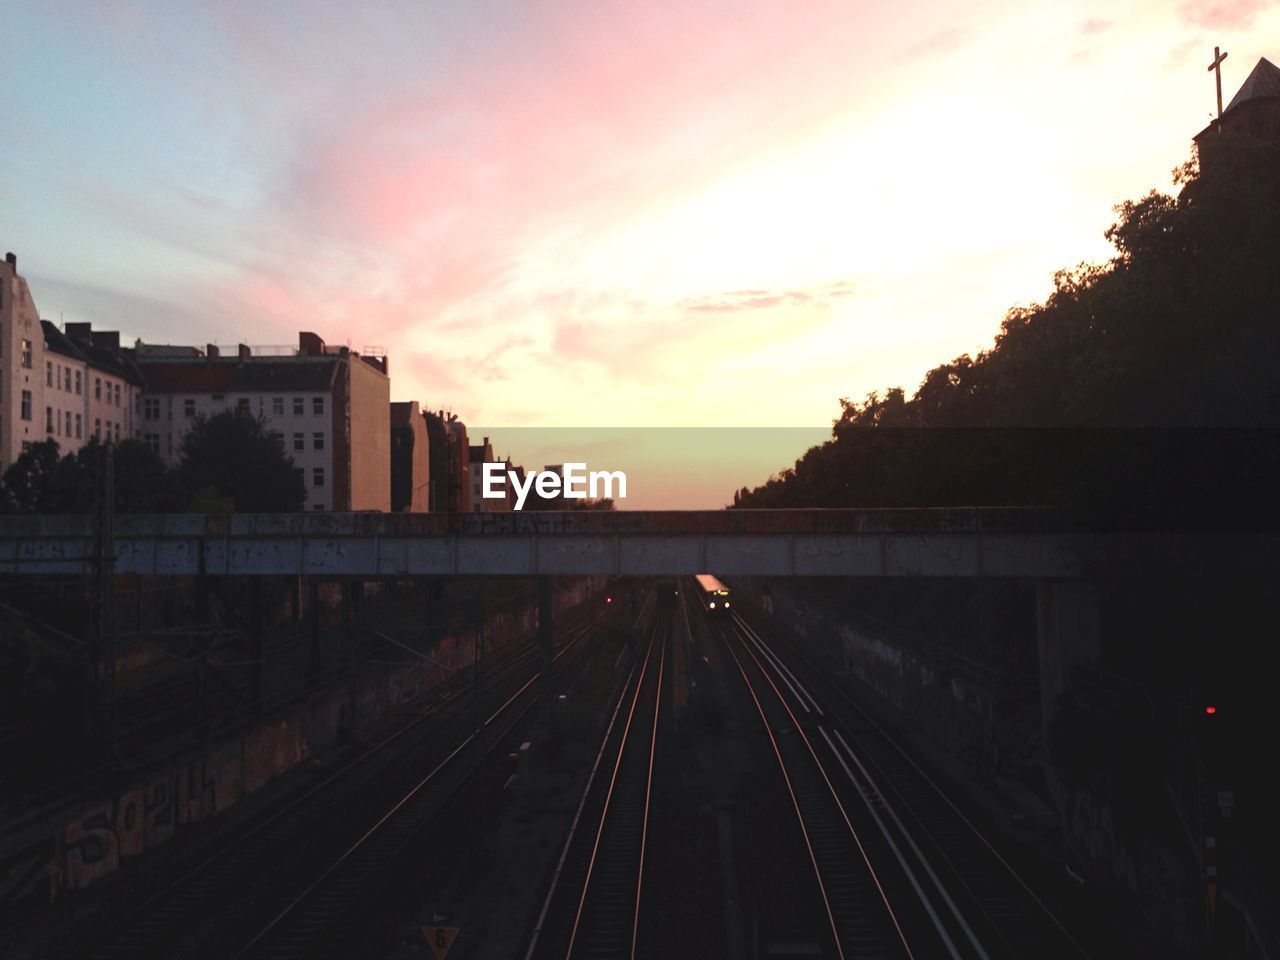 Railroad tracks by buildings against sunset sky